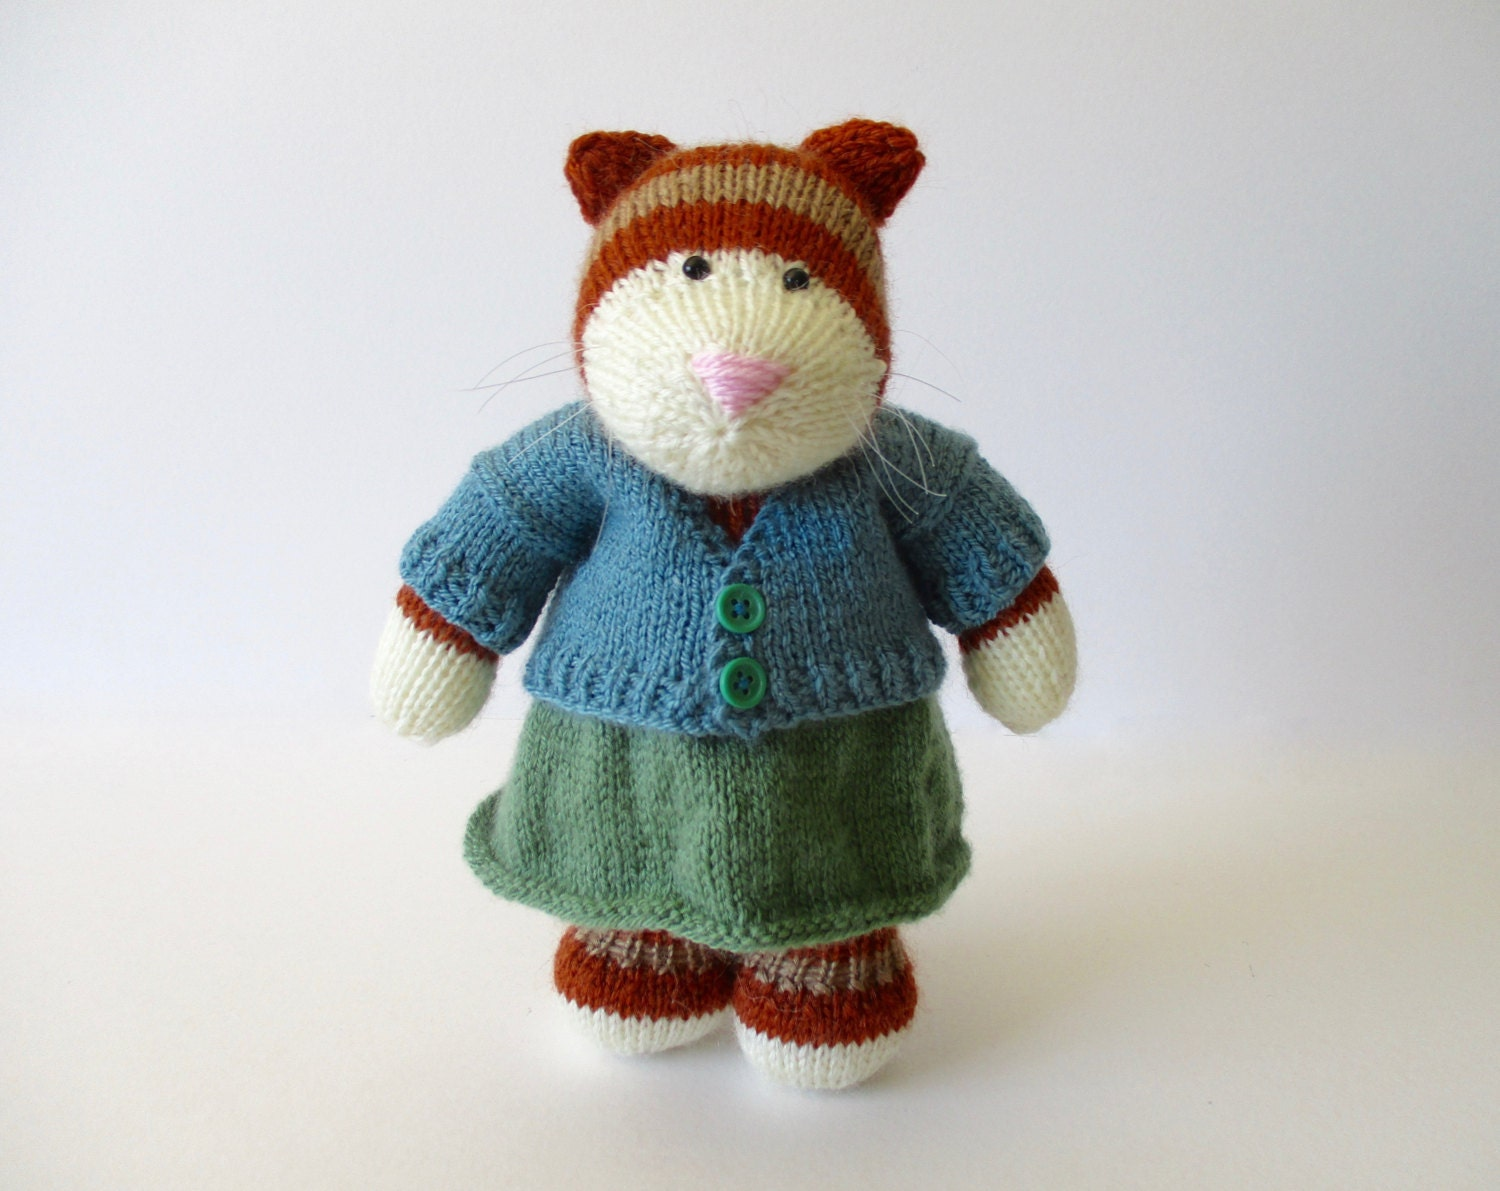 Knitting Patterns For Cat Toys : Tabby cat toy knitting pattern